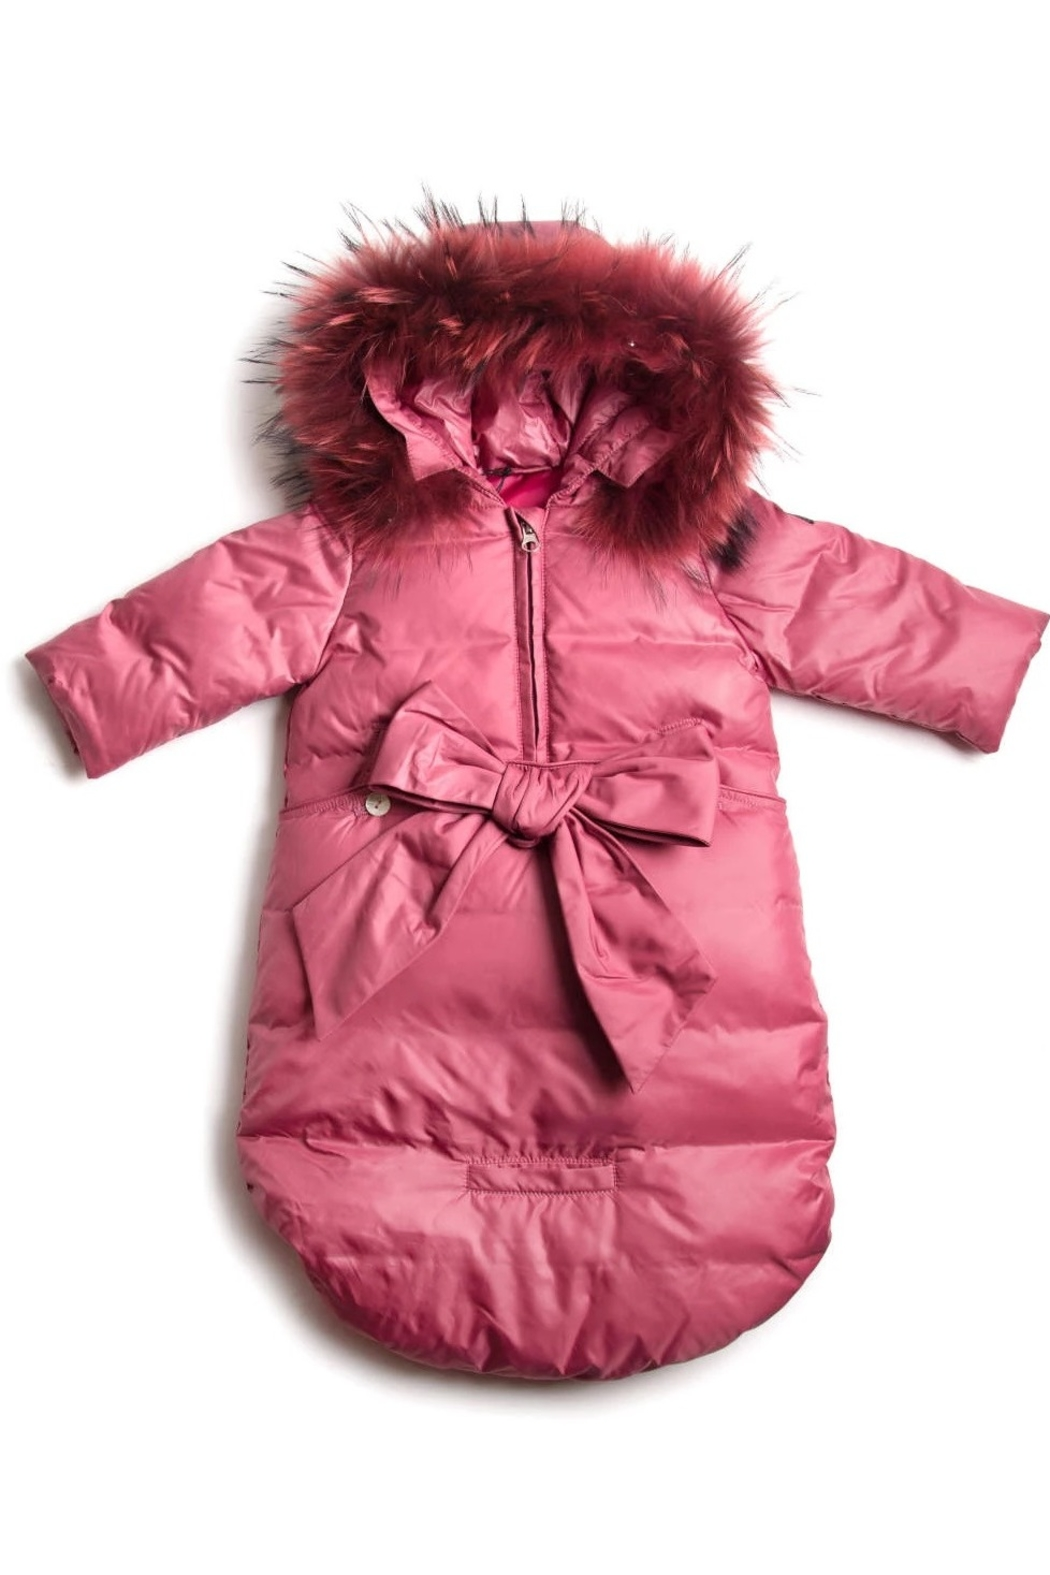 PRAMIE INFANT DOWN SNOW SUIT SACK - Girls and Boys Newborn Infant Baby Puffer Pram Bag Snowsuit Bunting - Front Cropped Image